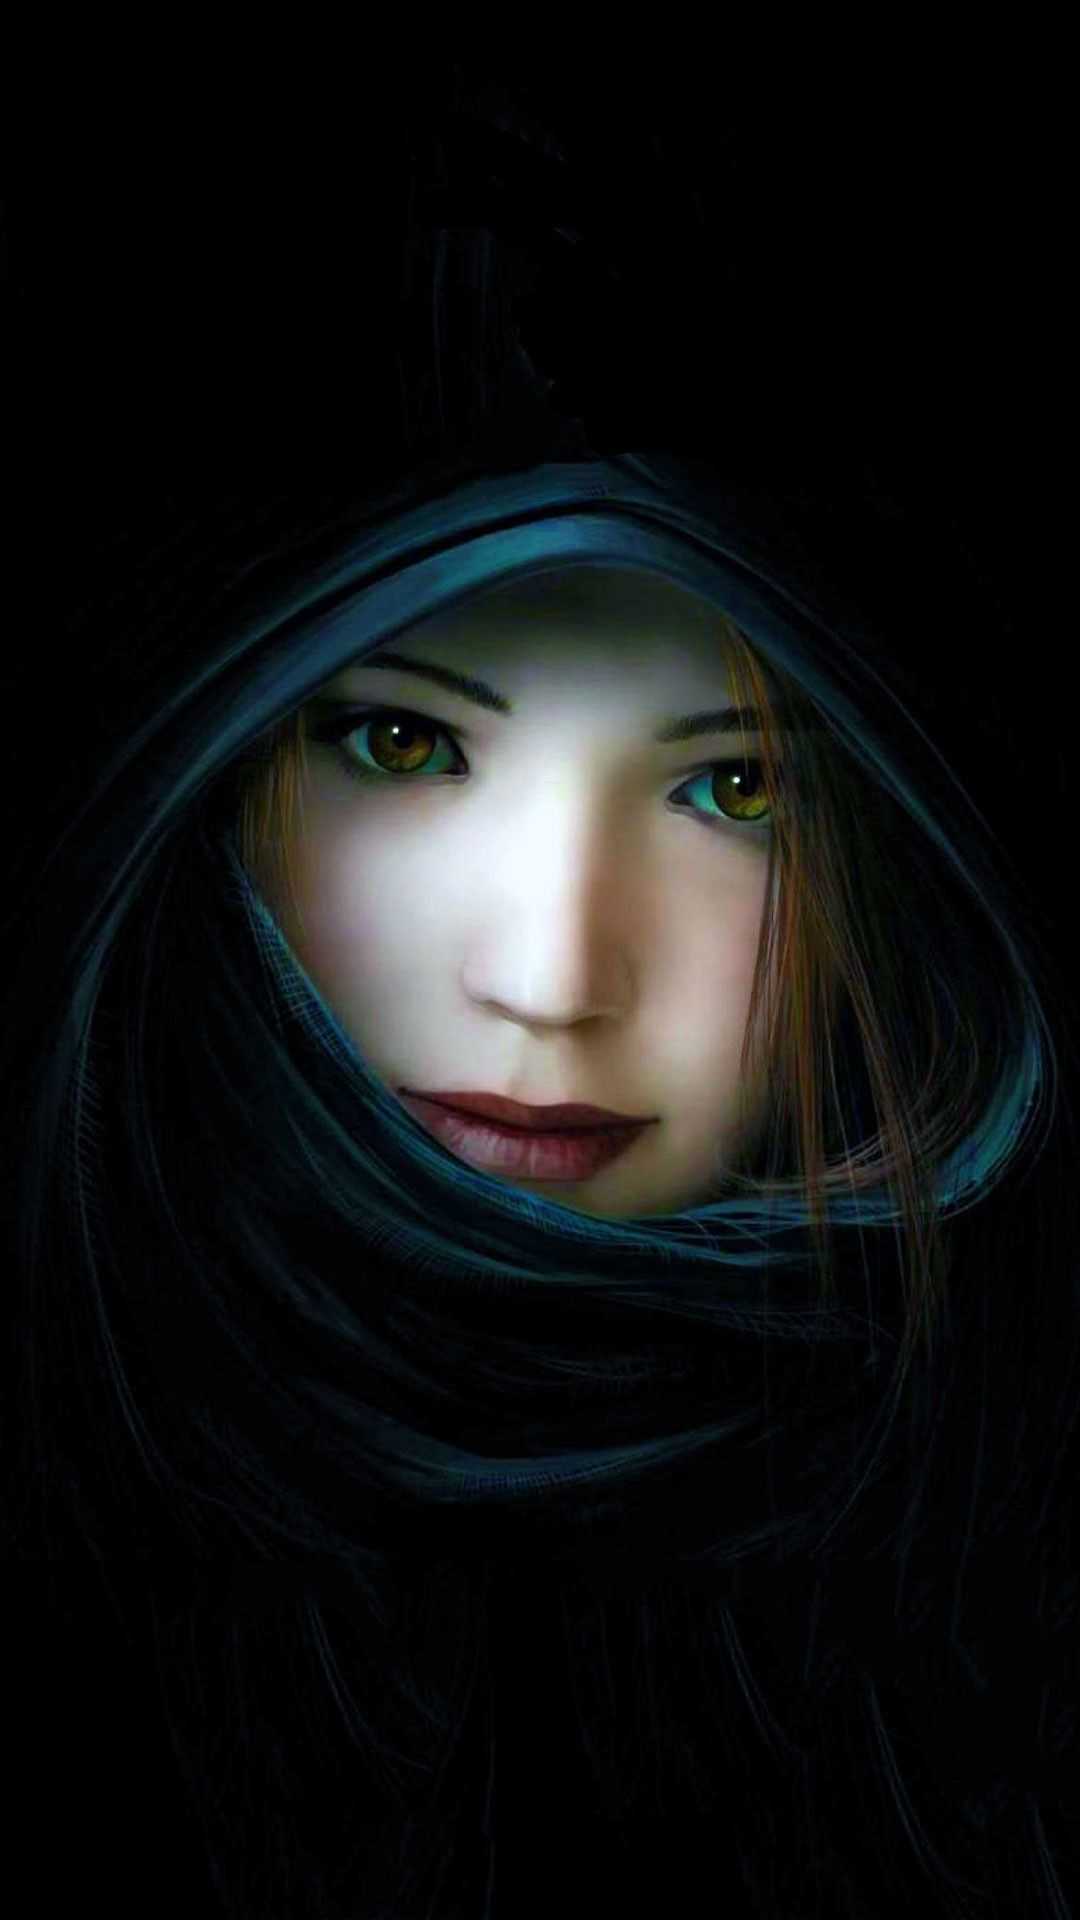 3D Girl Wallpapers - Top Free 3D Girl Backgrounds ...